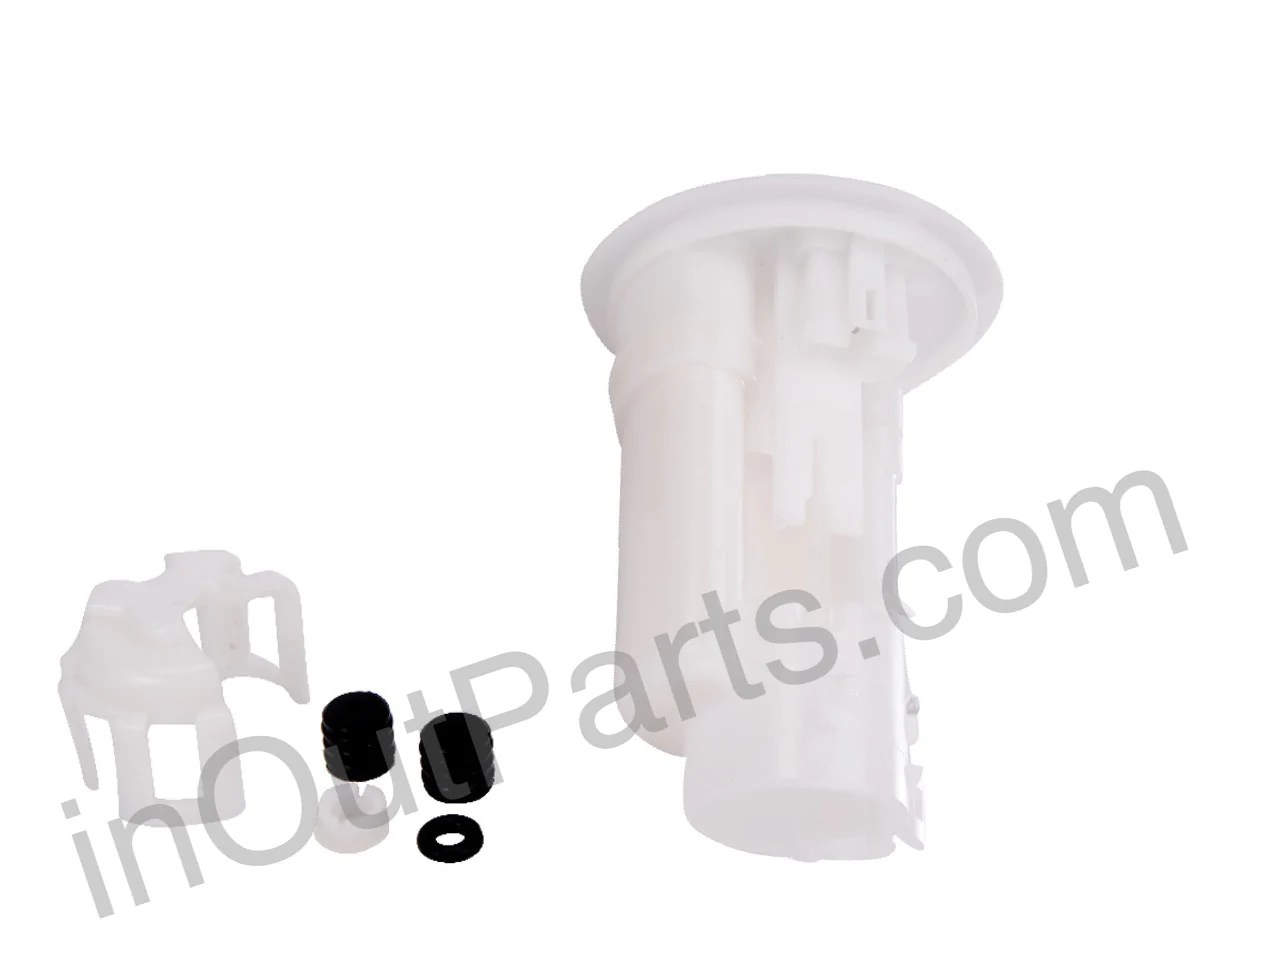 hight resolution of fuel filter fits honda inspire accord usa uc1 2003 2004 2005 2006 20 inout parts